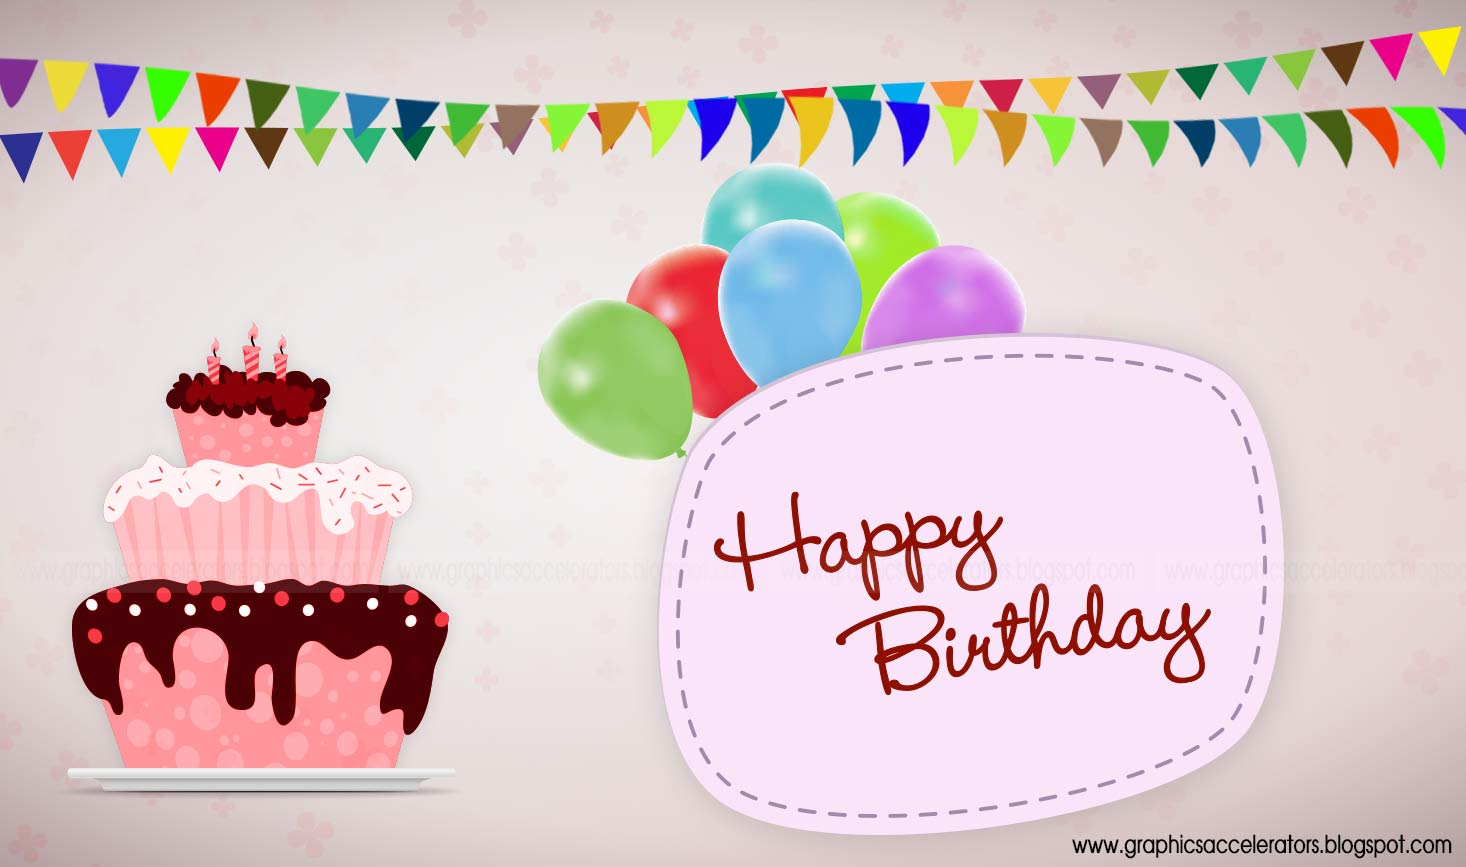 Free Wallpaper Birthday Card WallpaperSafari – Birthday Cards Pics Free